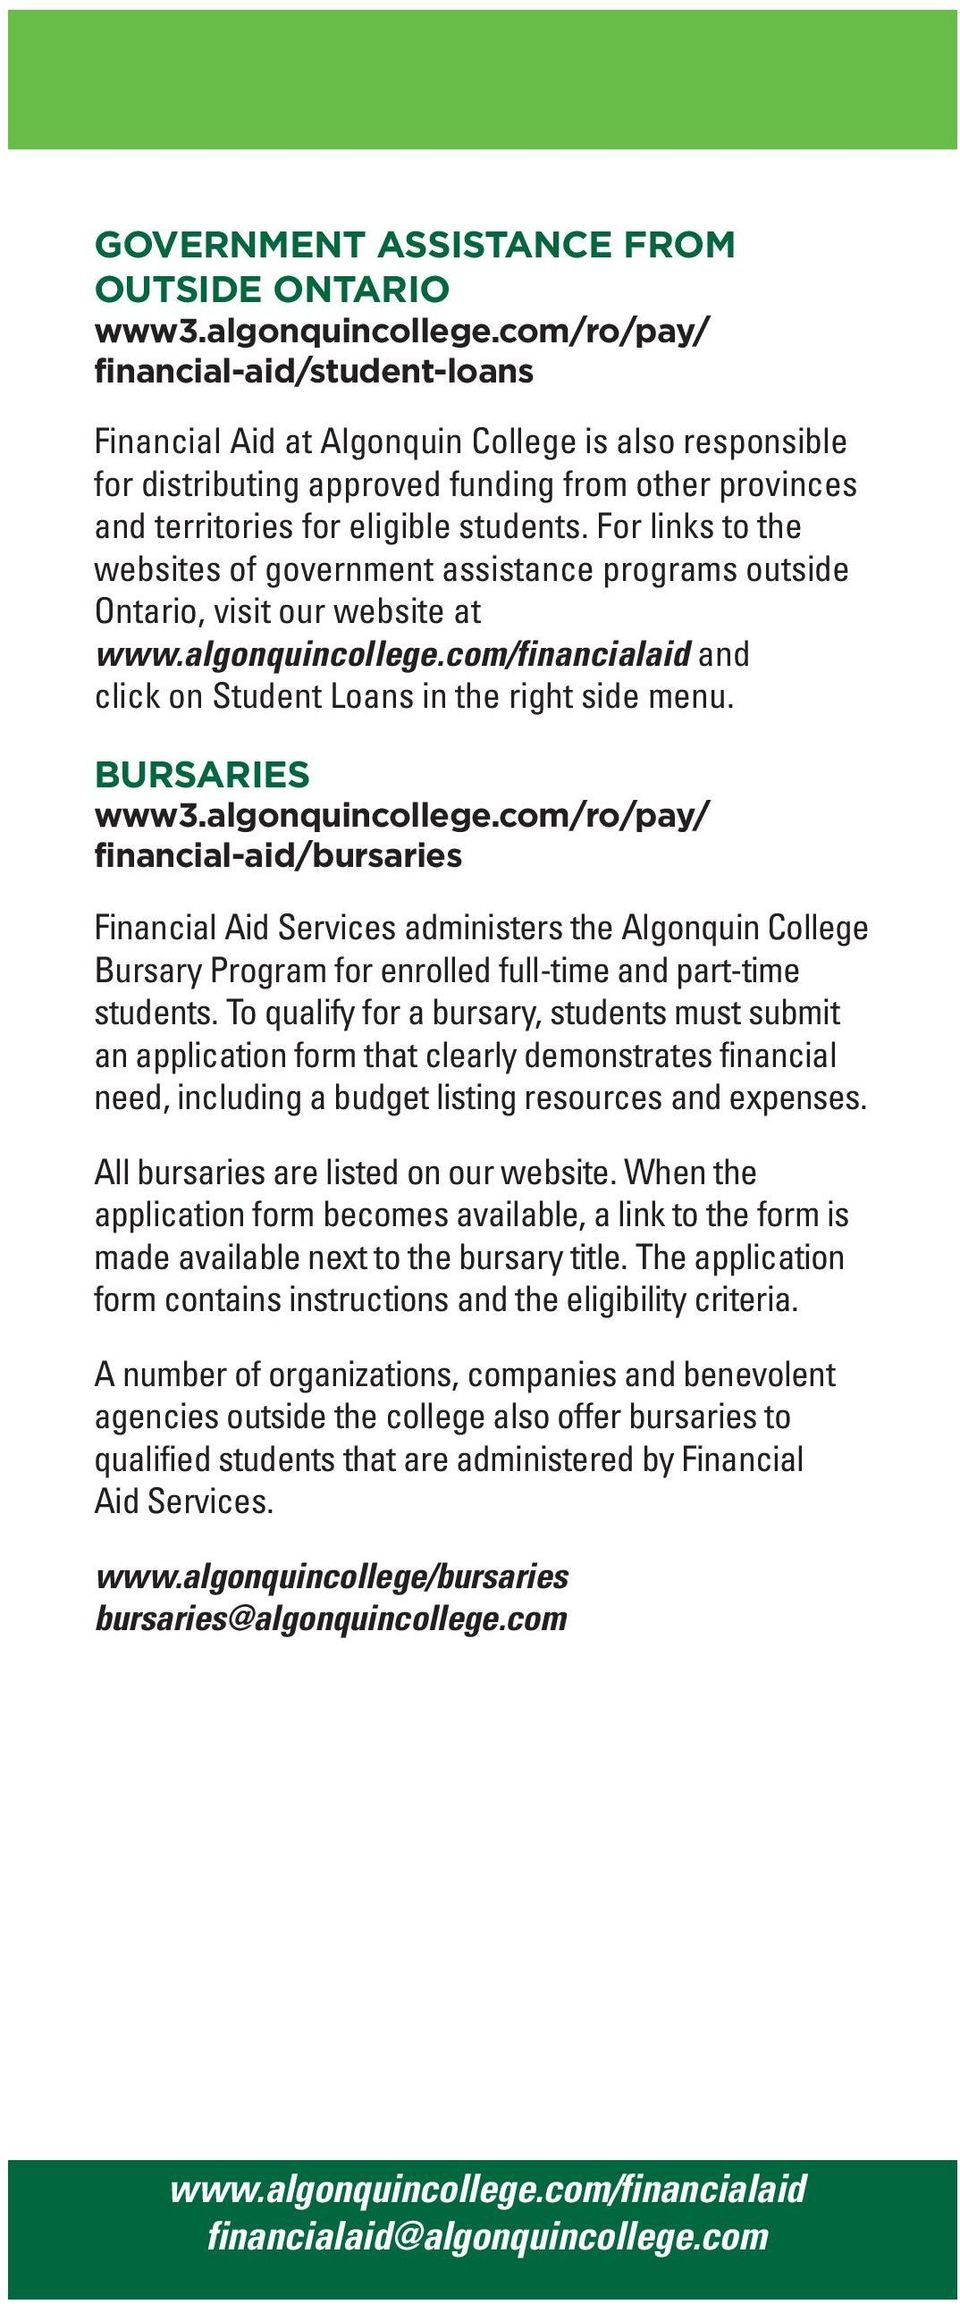 BURSARIES financial-aid/bursaries Financial Aid Services administers the Algonquin College Bursary Program for enrolled full-time and part-time students.